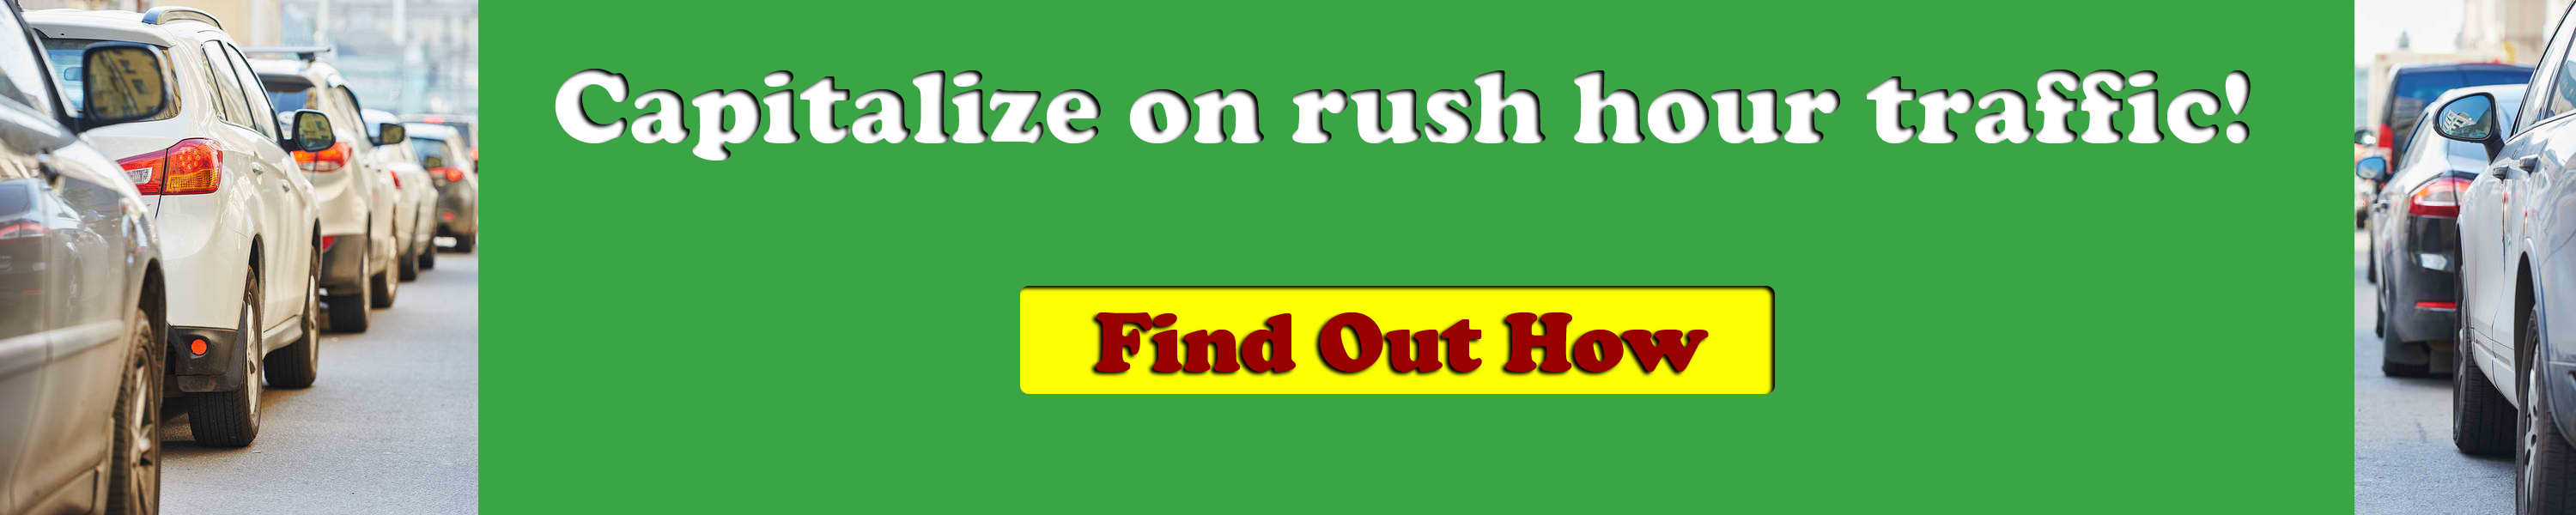 Capitalize On Rush Hour Traffic!